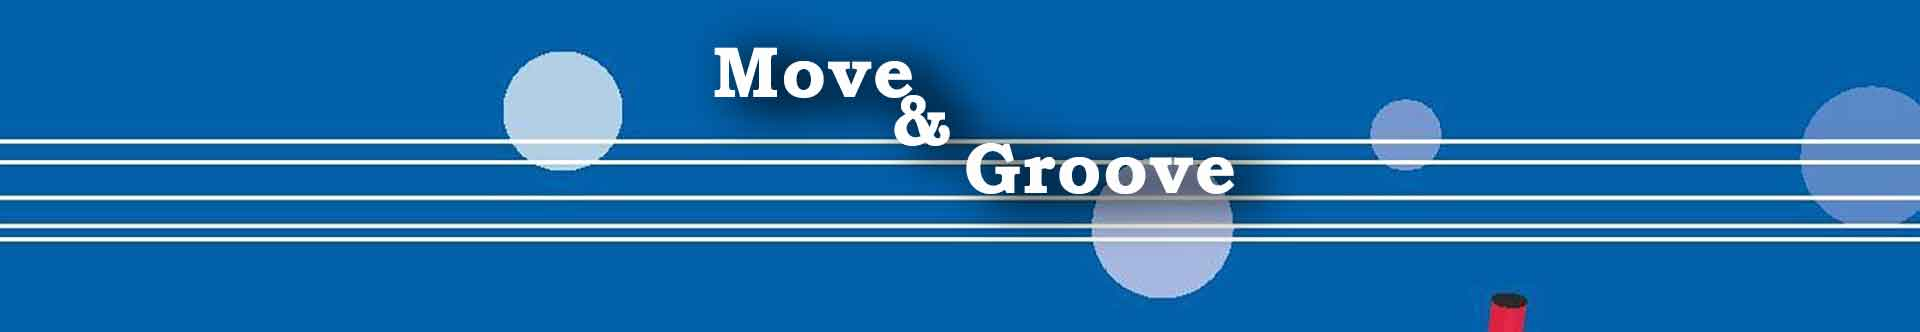 Move & Groove – Boomwhackers Choreographien